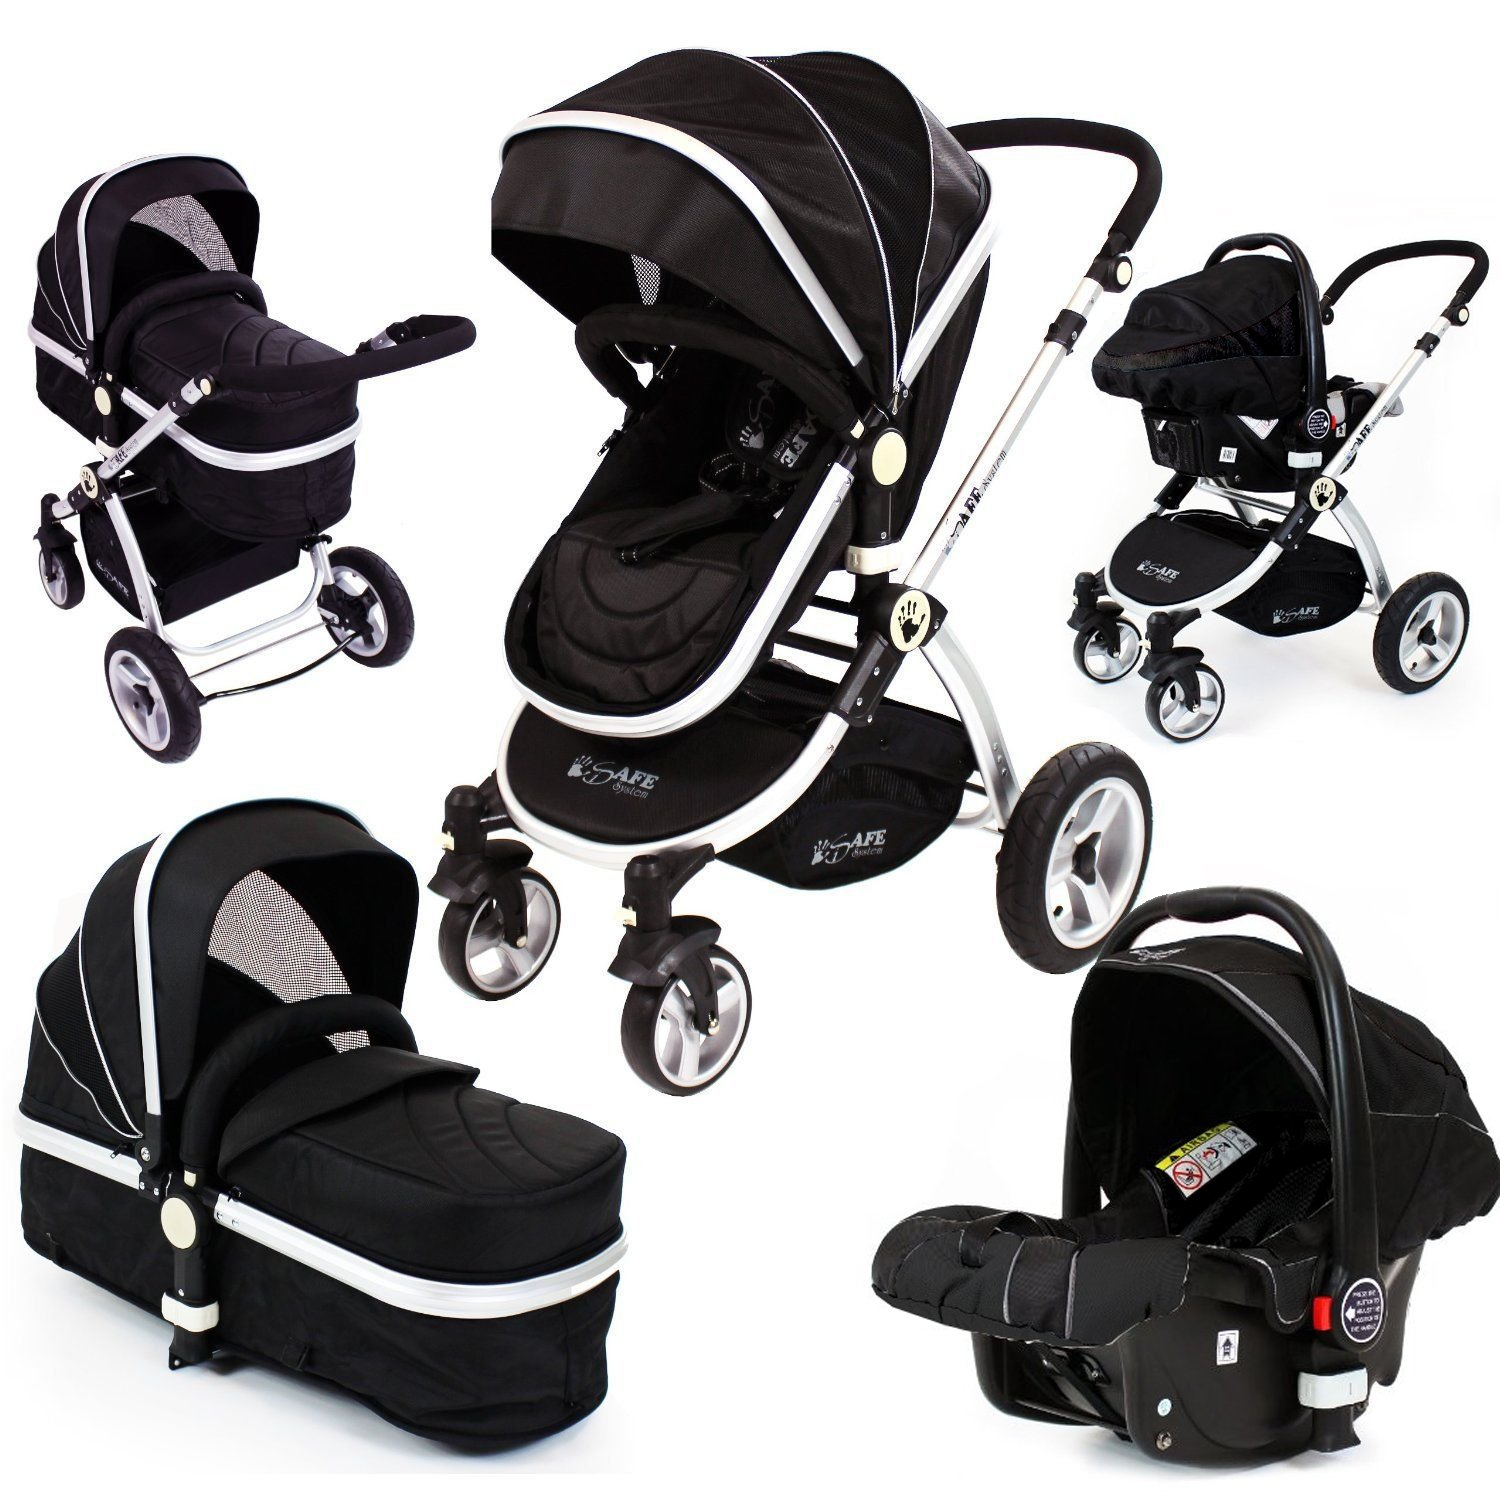 Black Trio Travel System Pram & Luxury Stroller 3 in 1